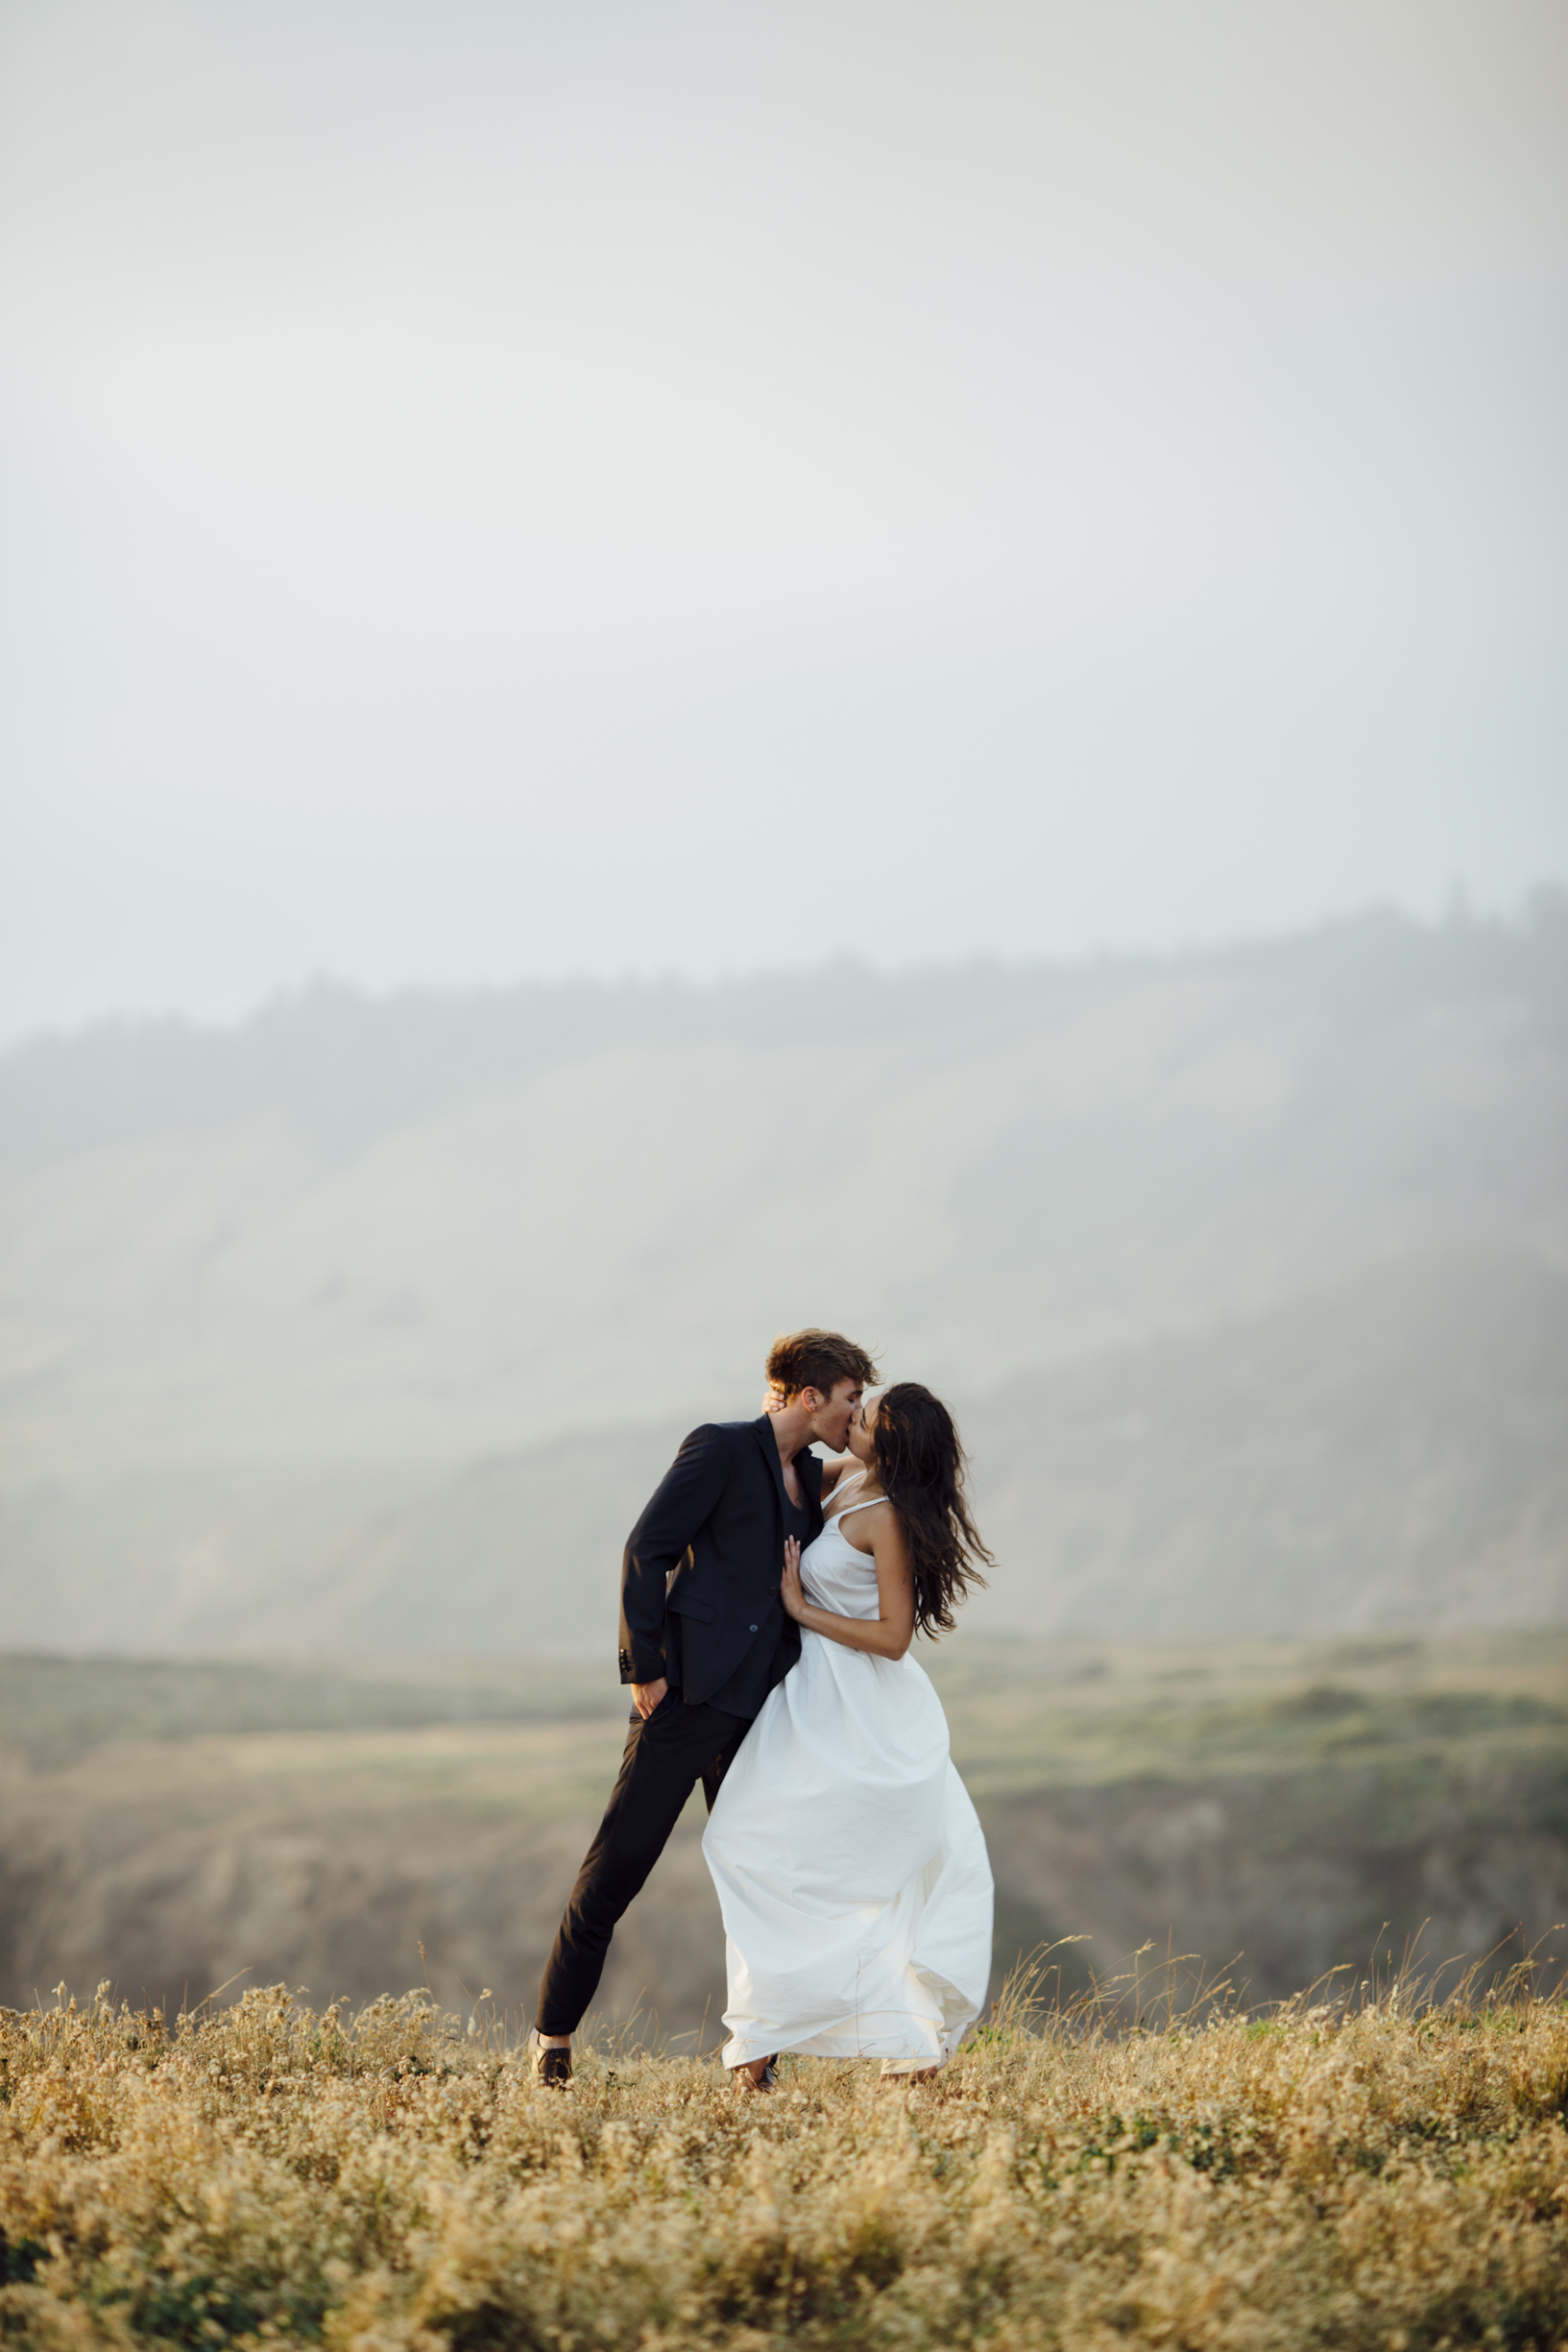 California-Wedding-Photography-by-Artur-Zaitsev-27